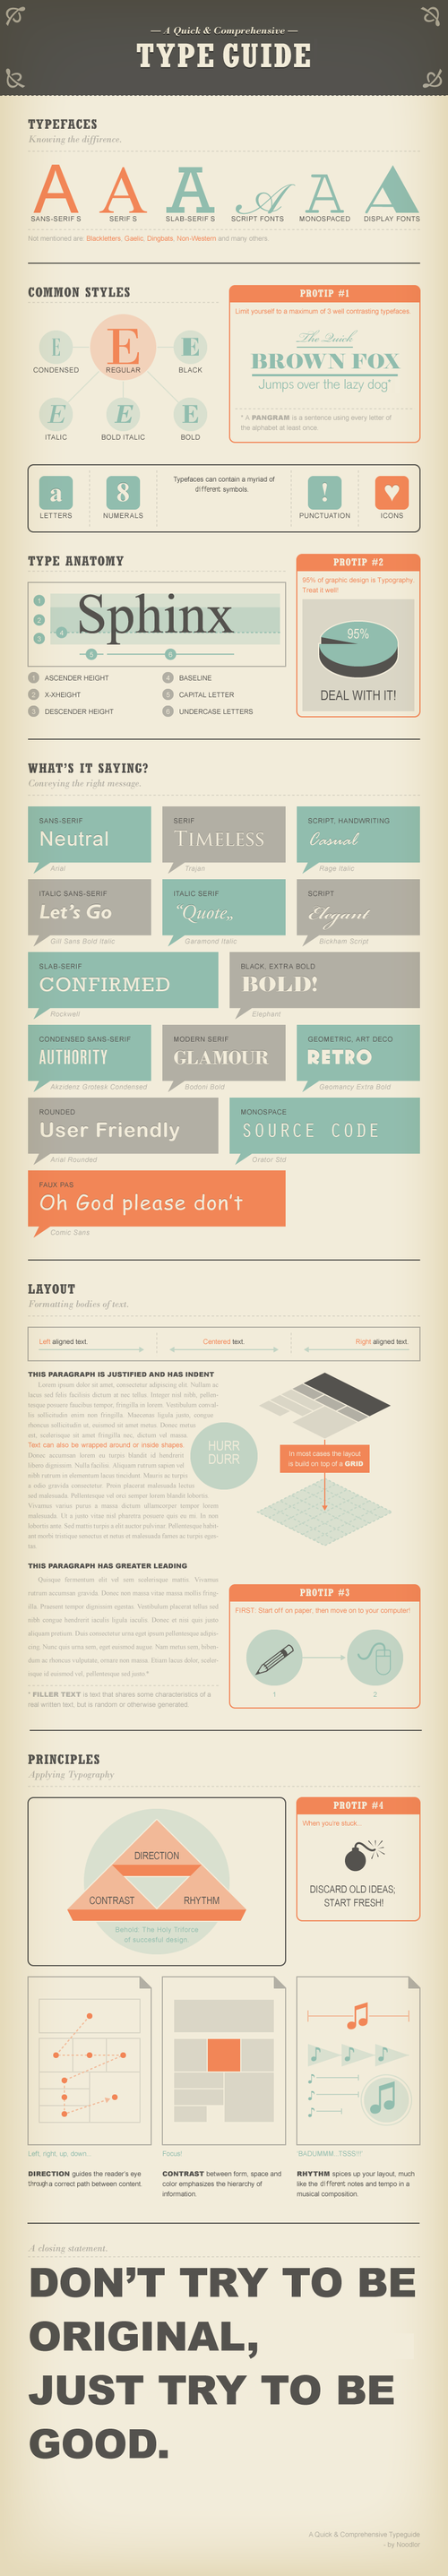 Guide-typographie